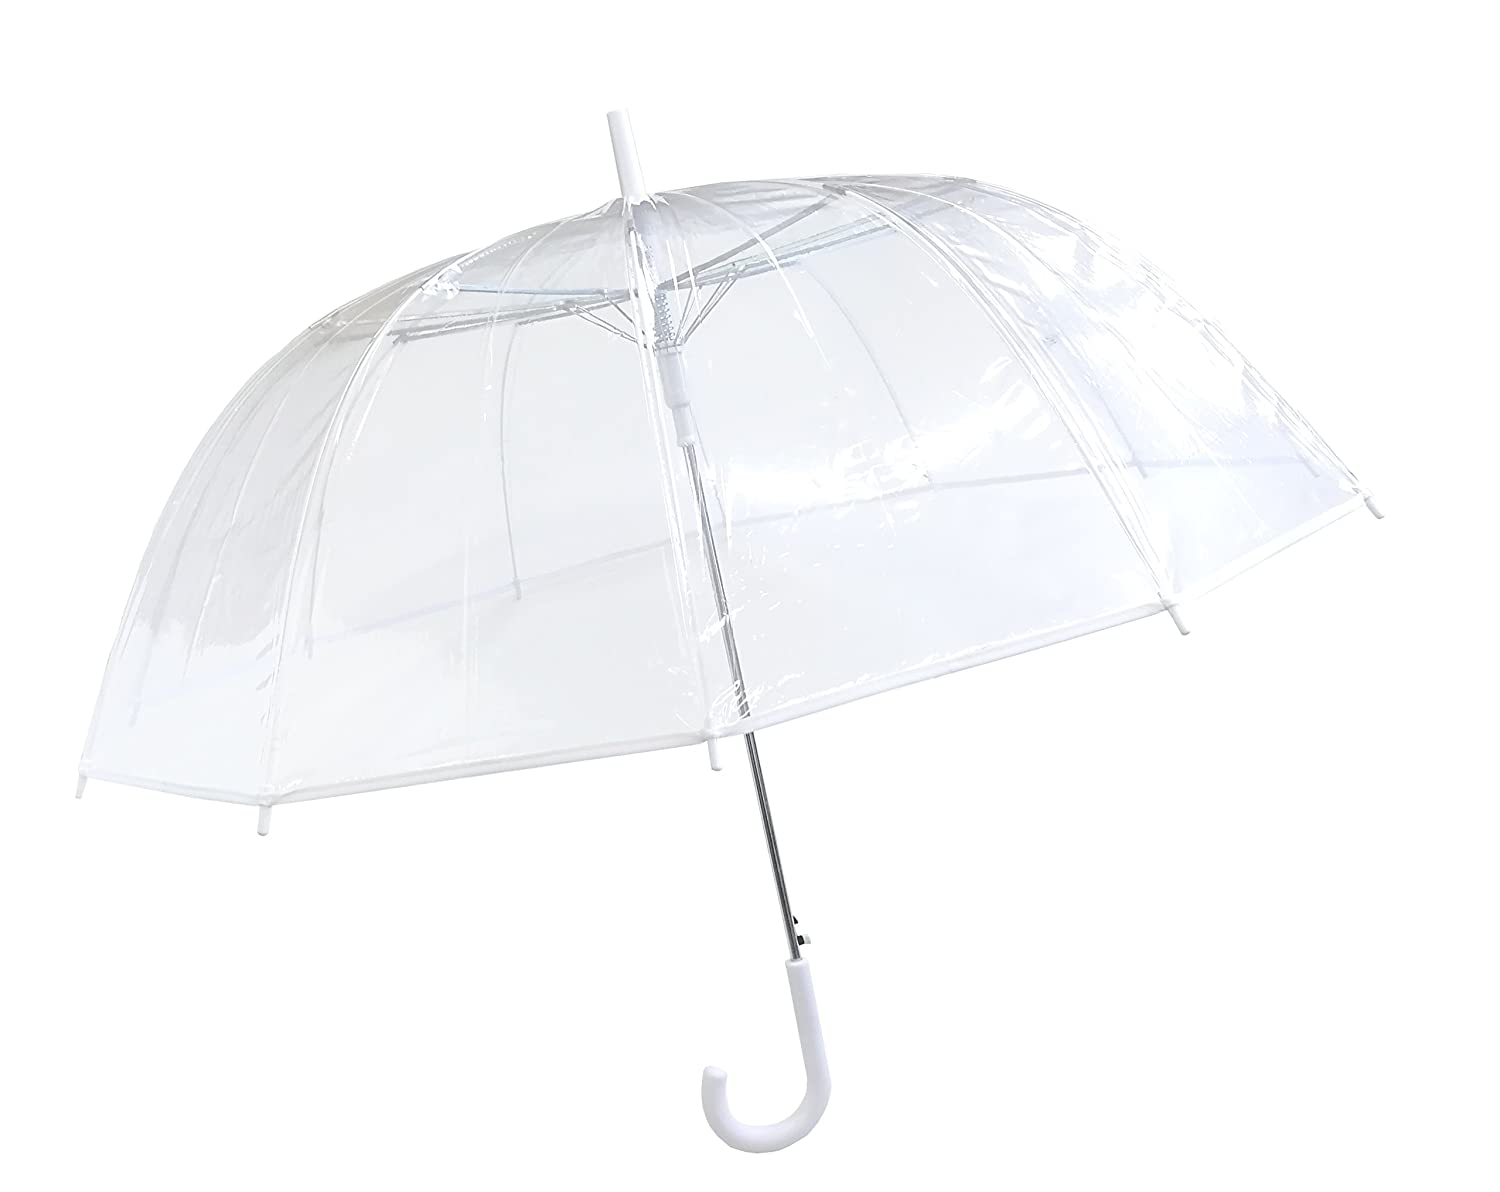 Line Art Umbrella : Umbrella extra large big automatic clear dome see through